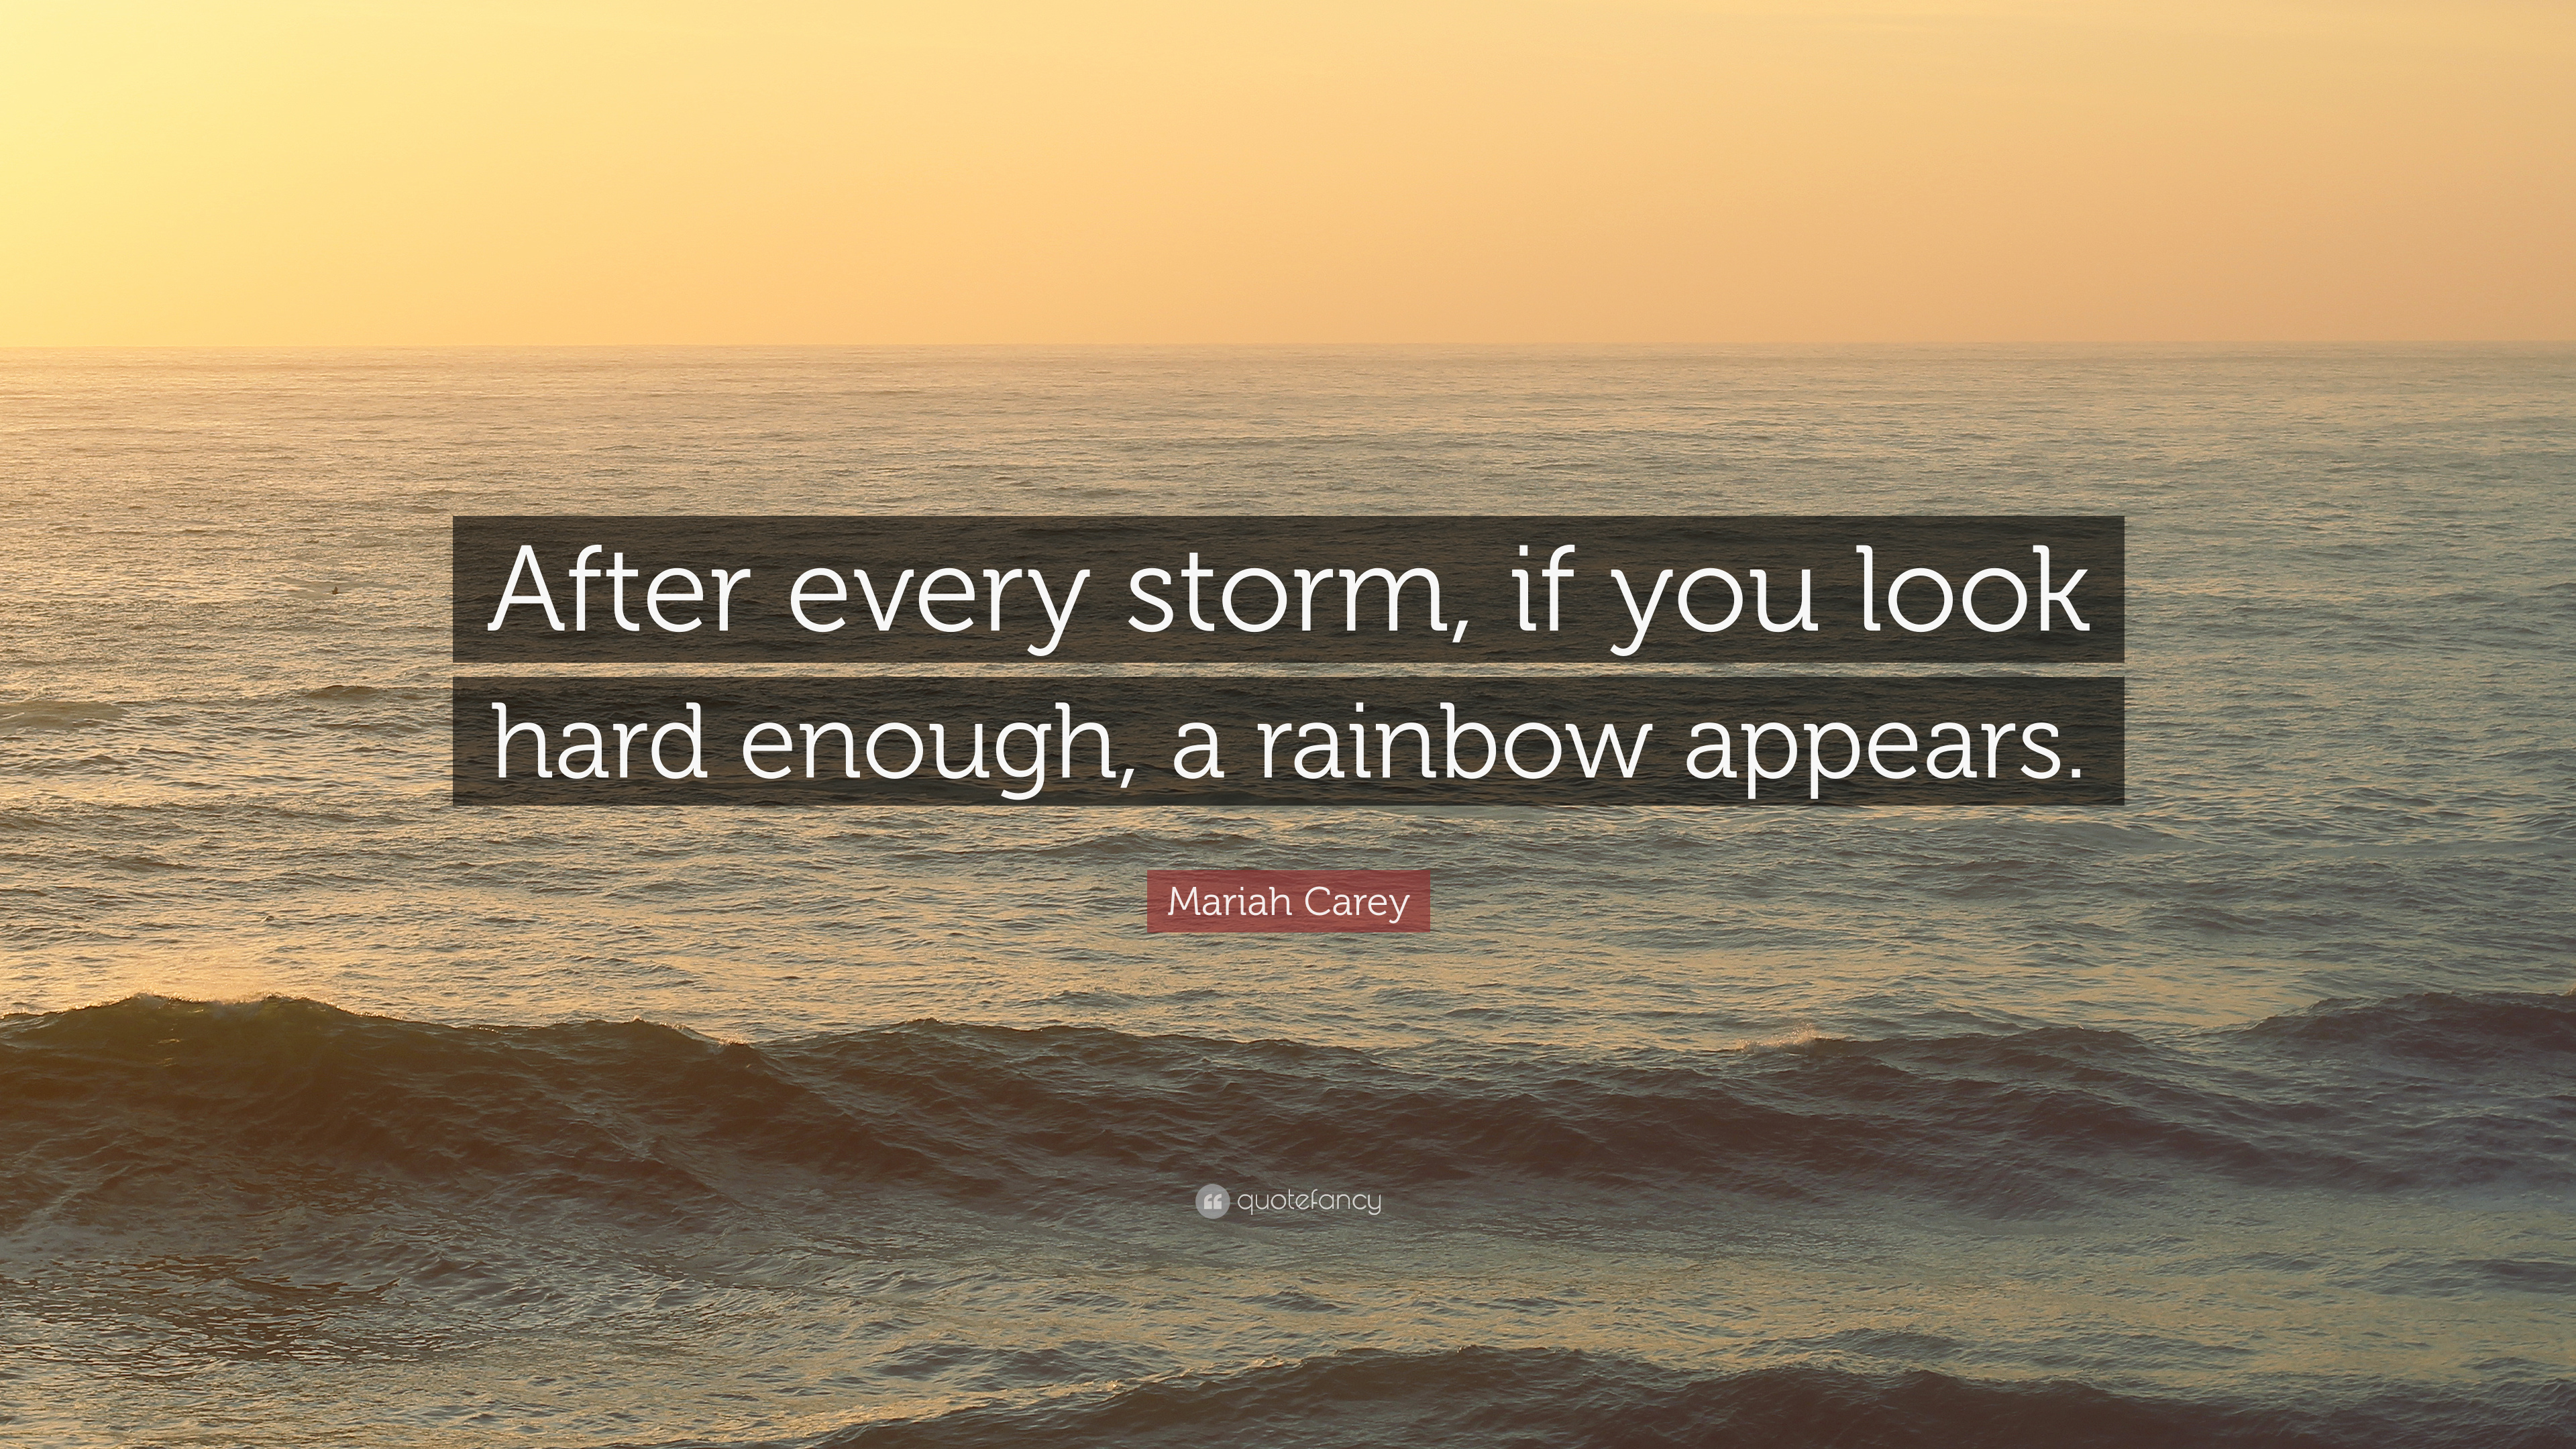 Mariah Carey Quote After Every Storm If You Look Hard Enough A